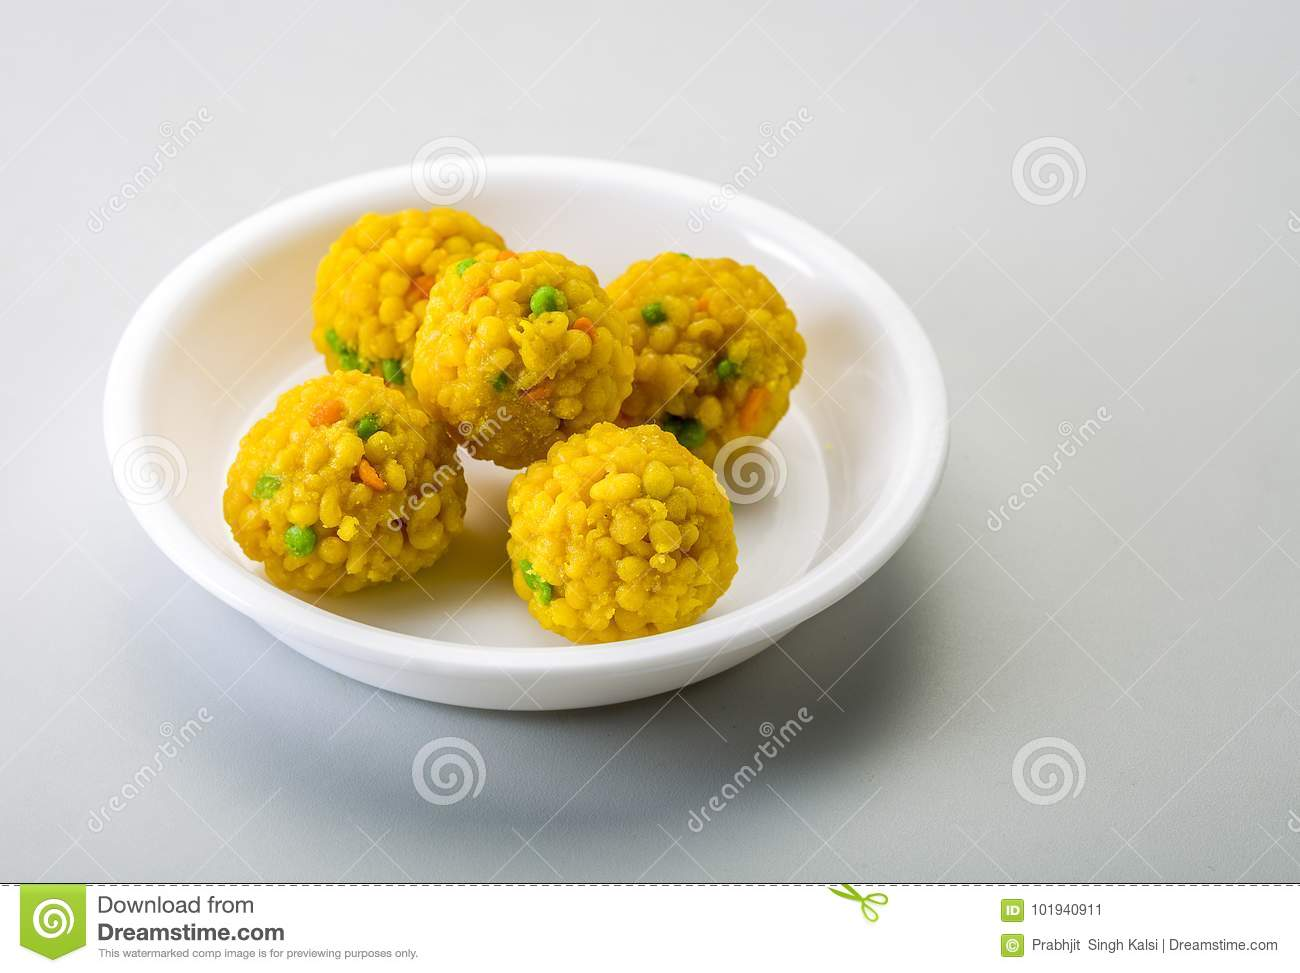 Laddu or laddoo are ball-shaped sweets popular in the Indian subcontinent.